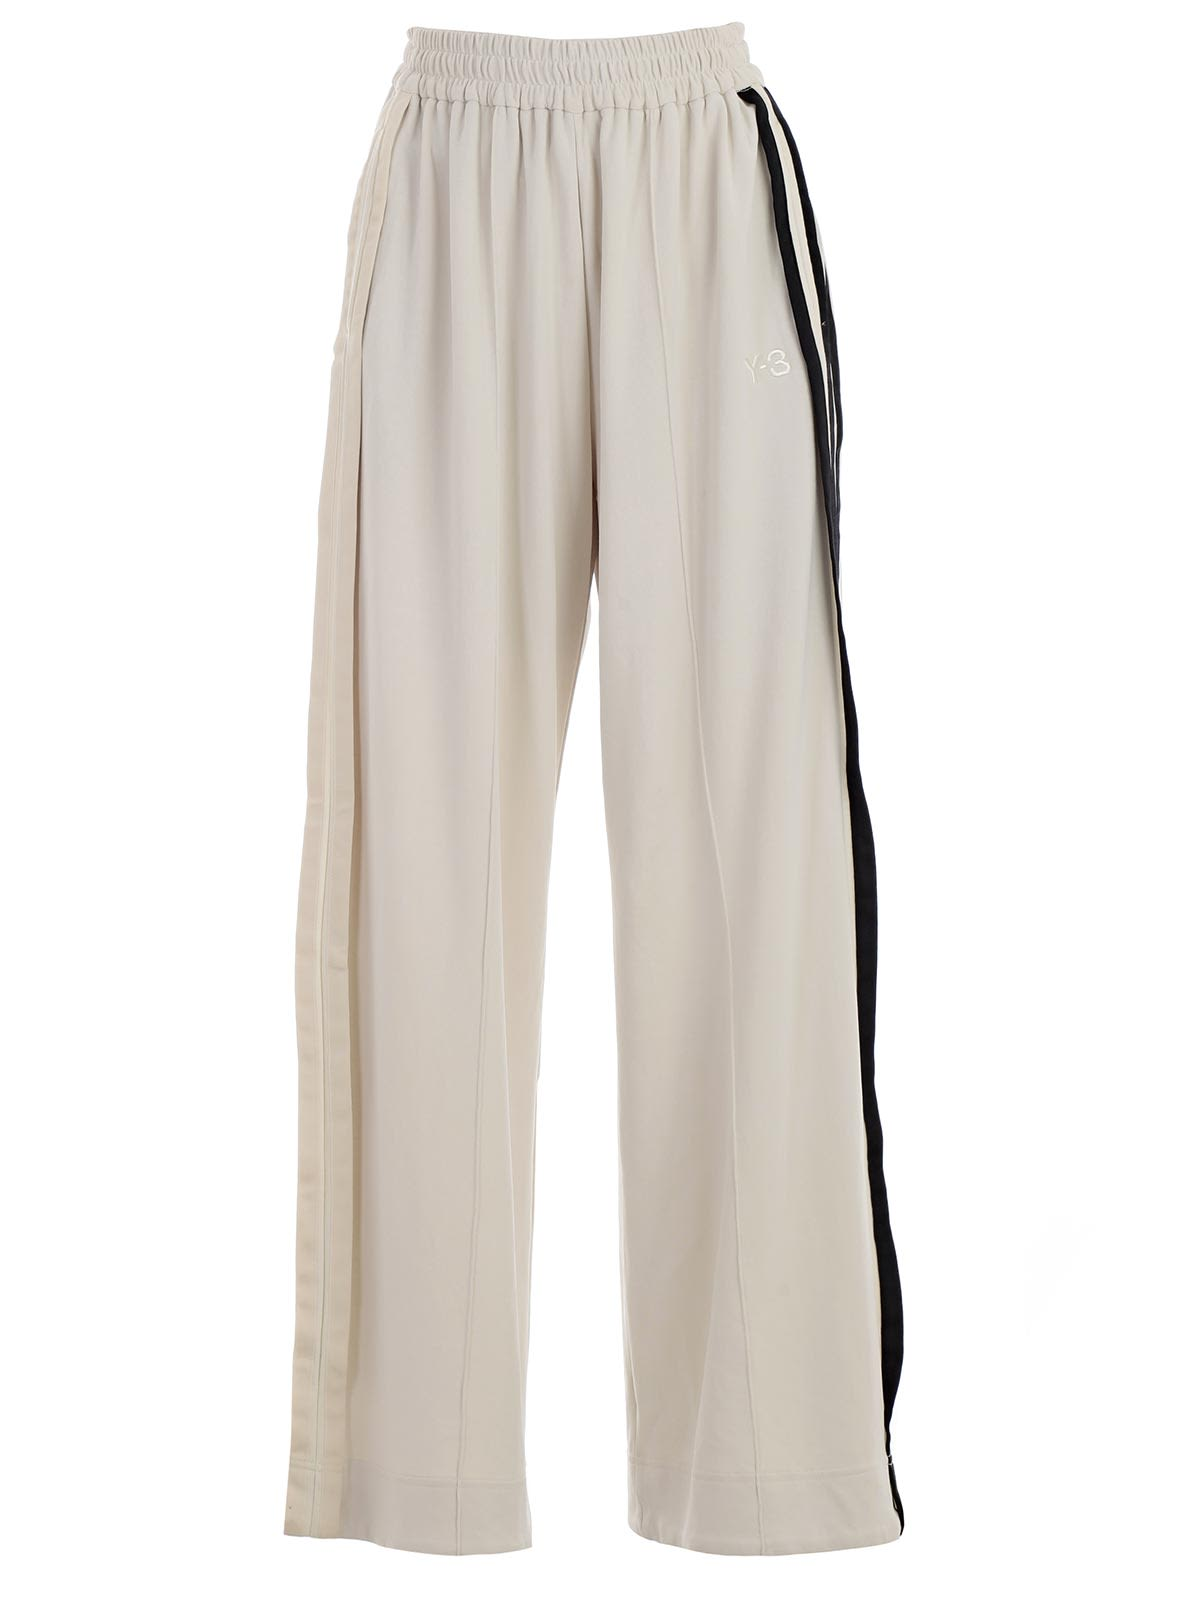 y-3 -  Striped Wide Leg Track Pants